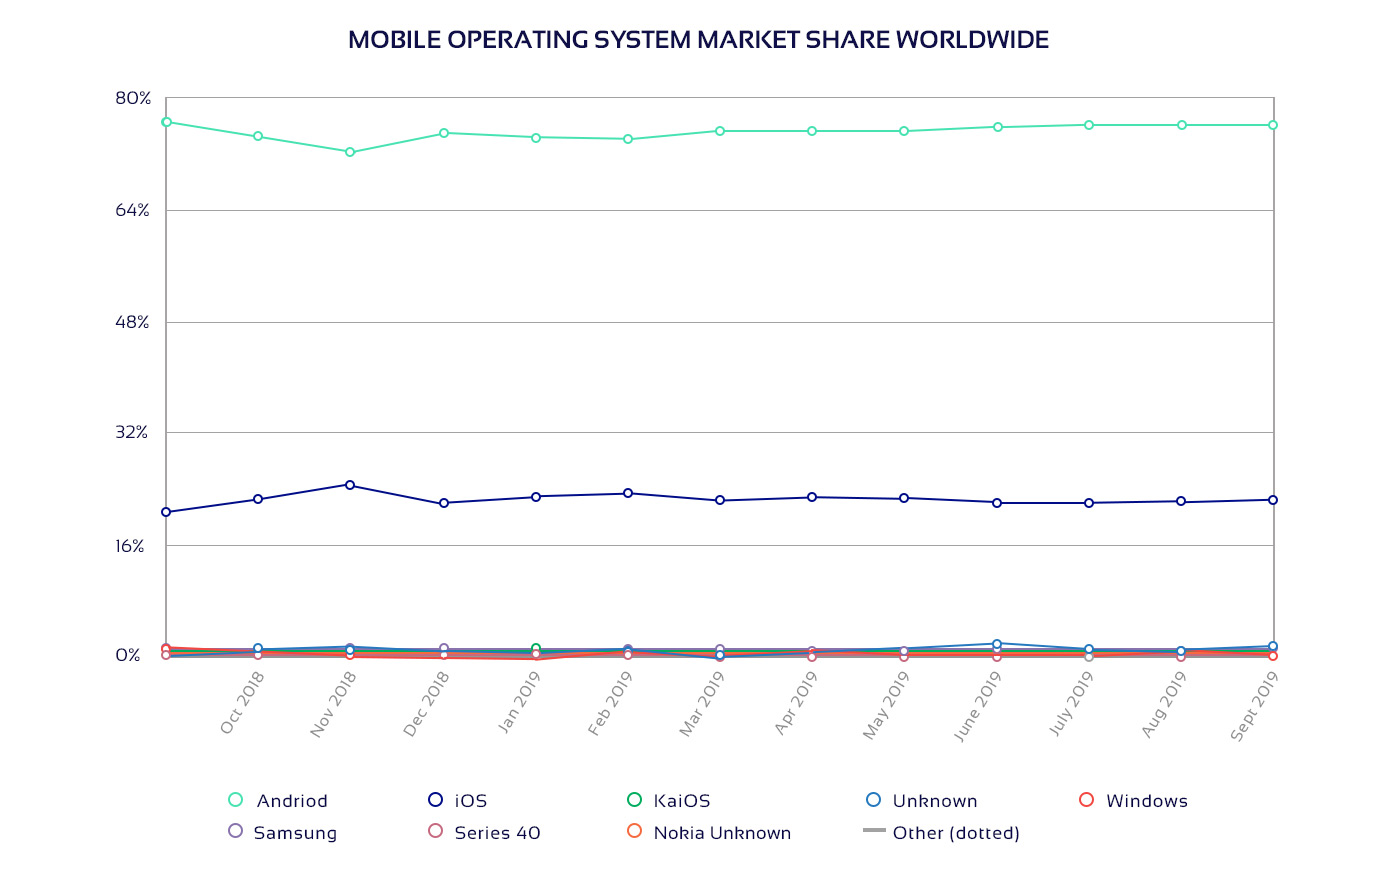 Diagram on mobile operating system market share worldwide